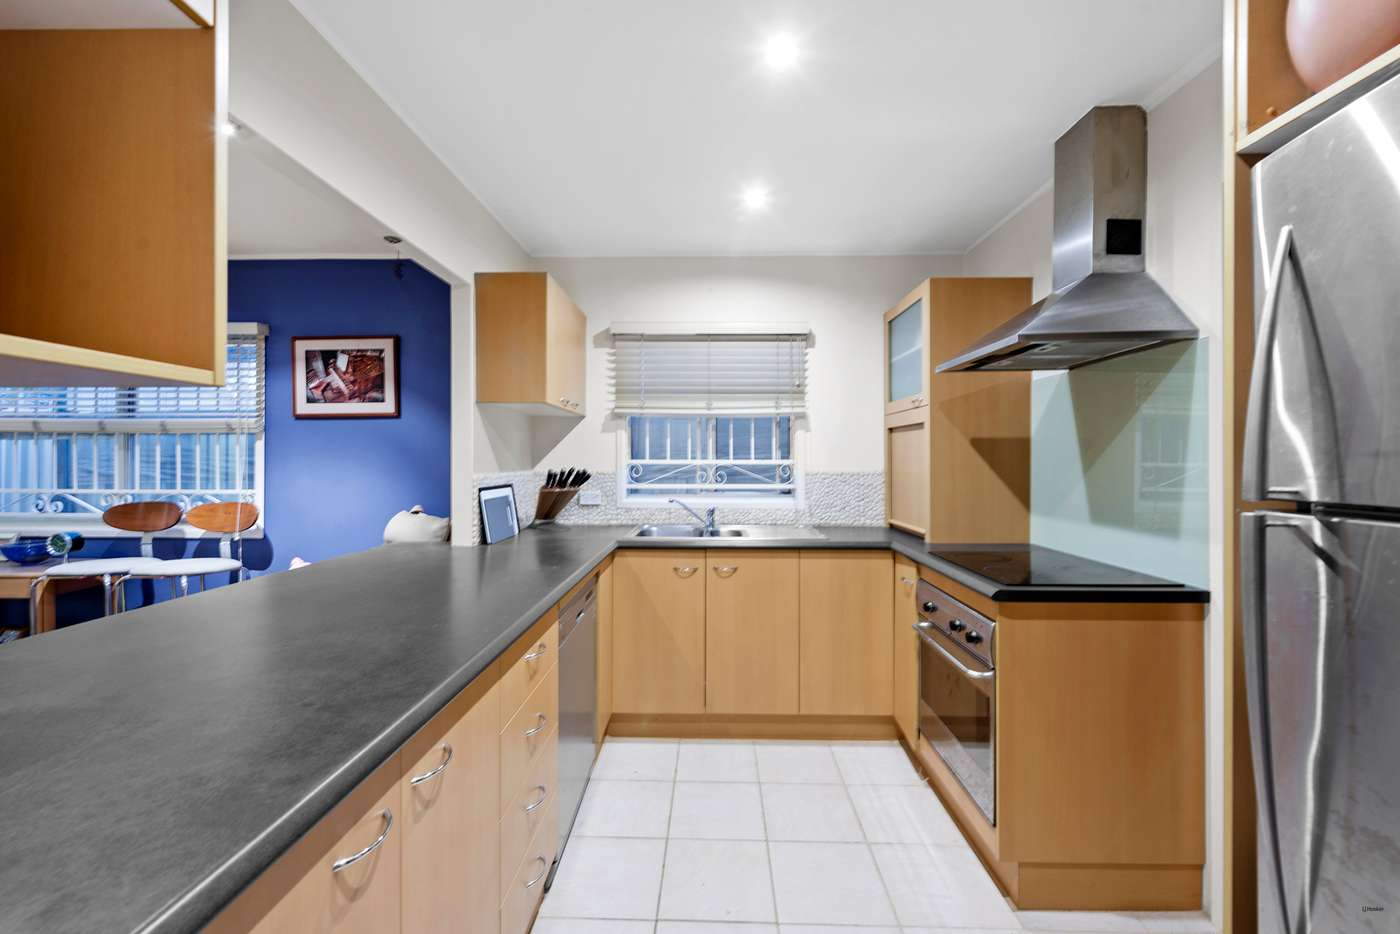 Fifth view of Homely house listing, 130 Cypress Terrace, Palm Beach QLD 4221